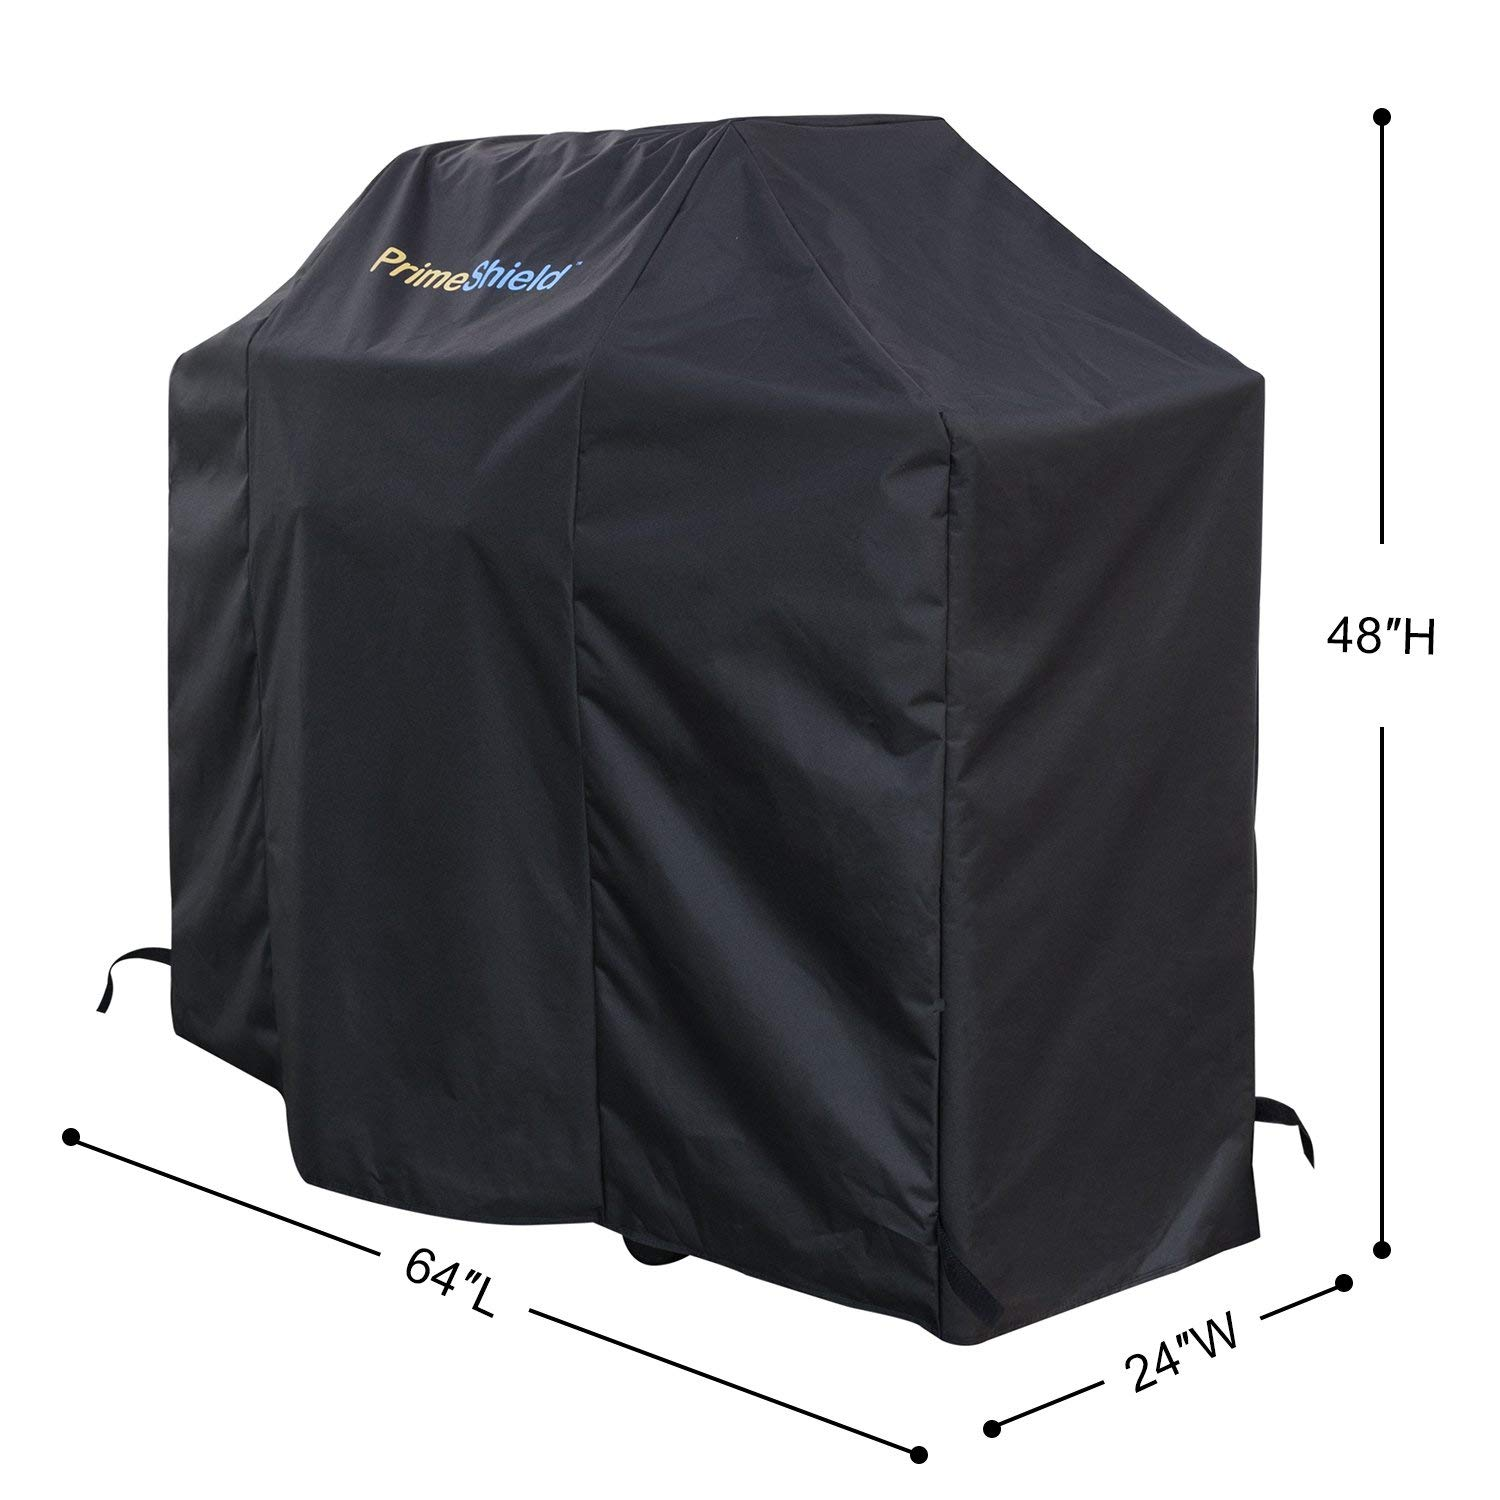 Household Merchandises Considerate Waterproof Outdoor Patio Garden Furniture Covers Rain Snow Chair Covers For Sofa Table Chair Dustproof Cover